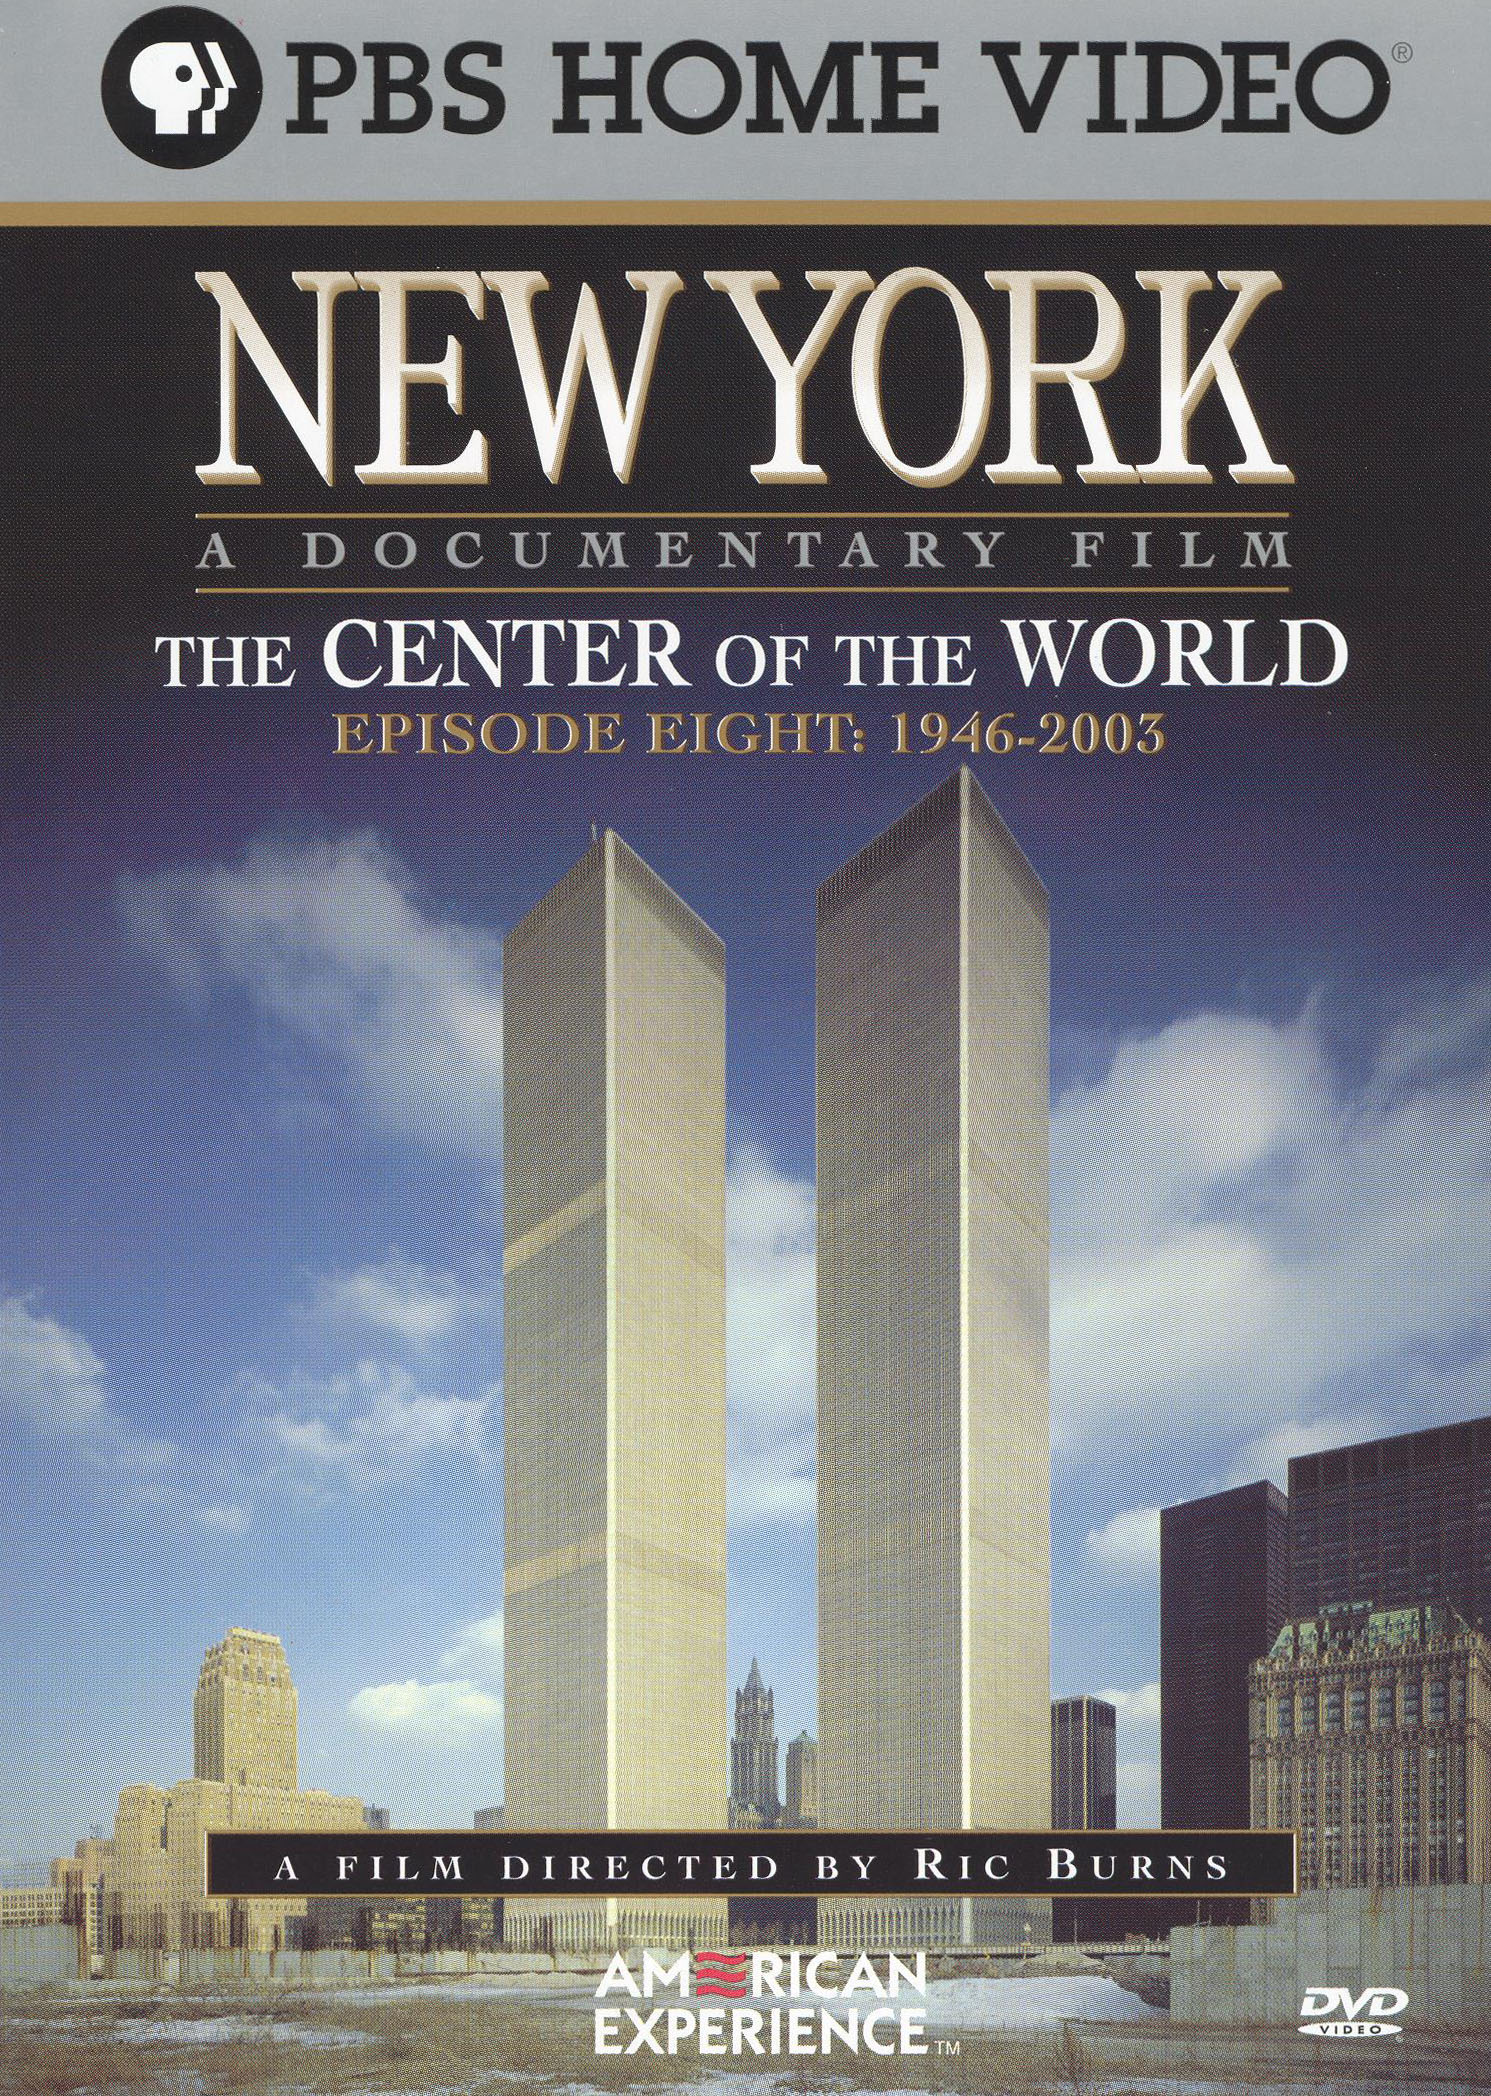 New York, Episode 8: 1945-2003 - The Center of the World